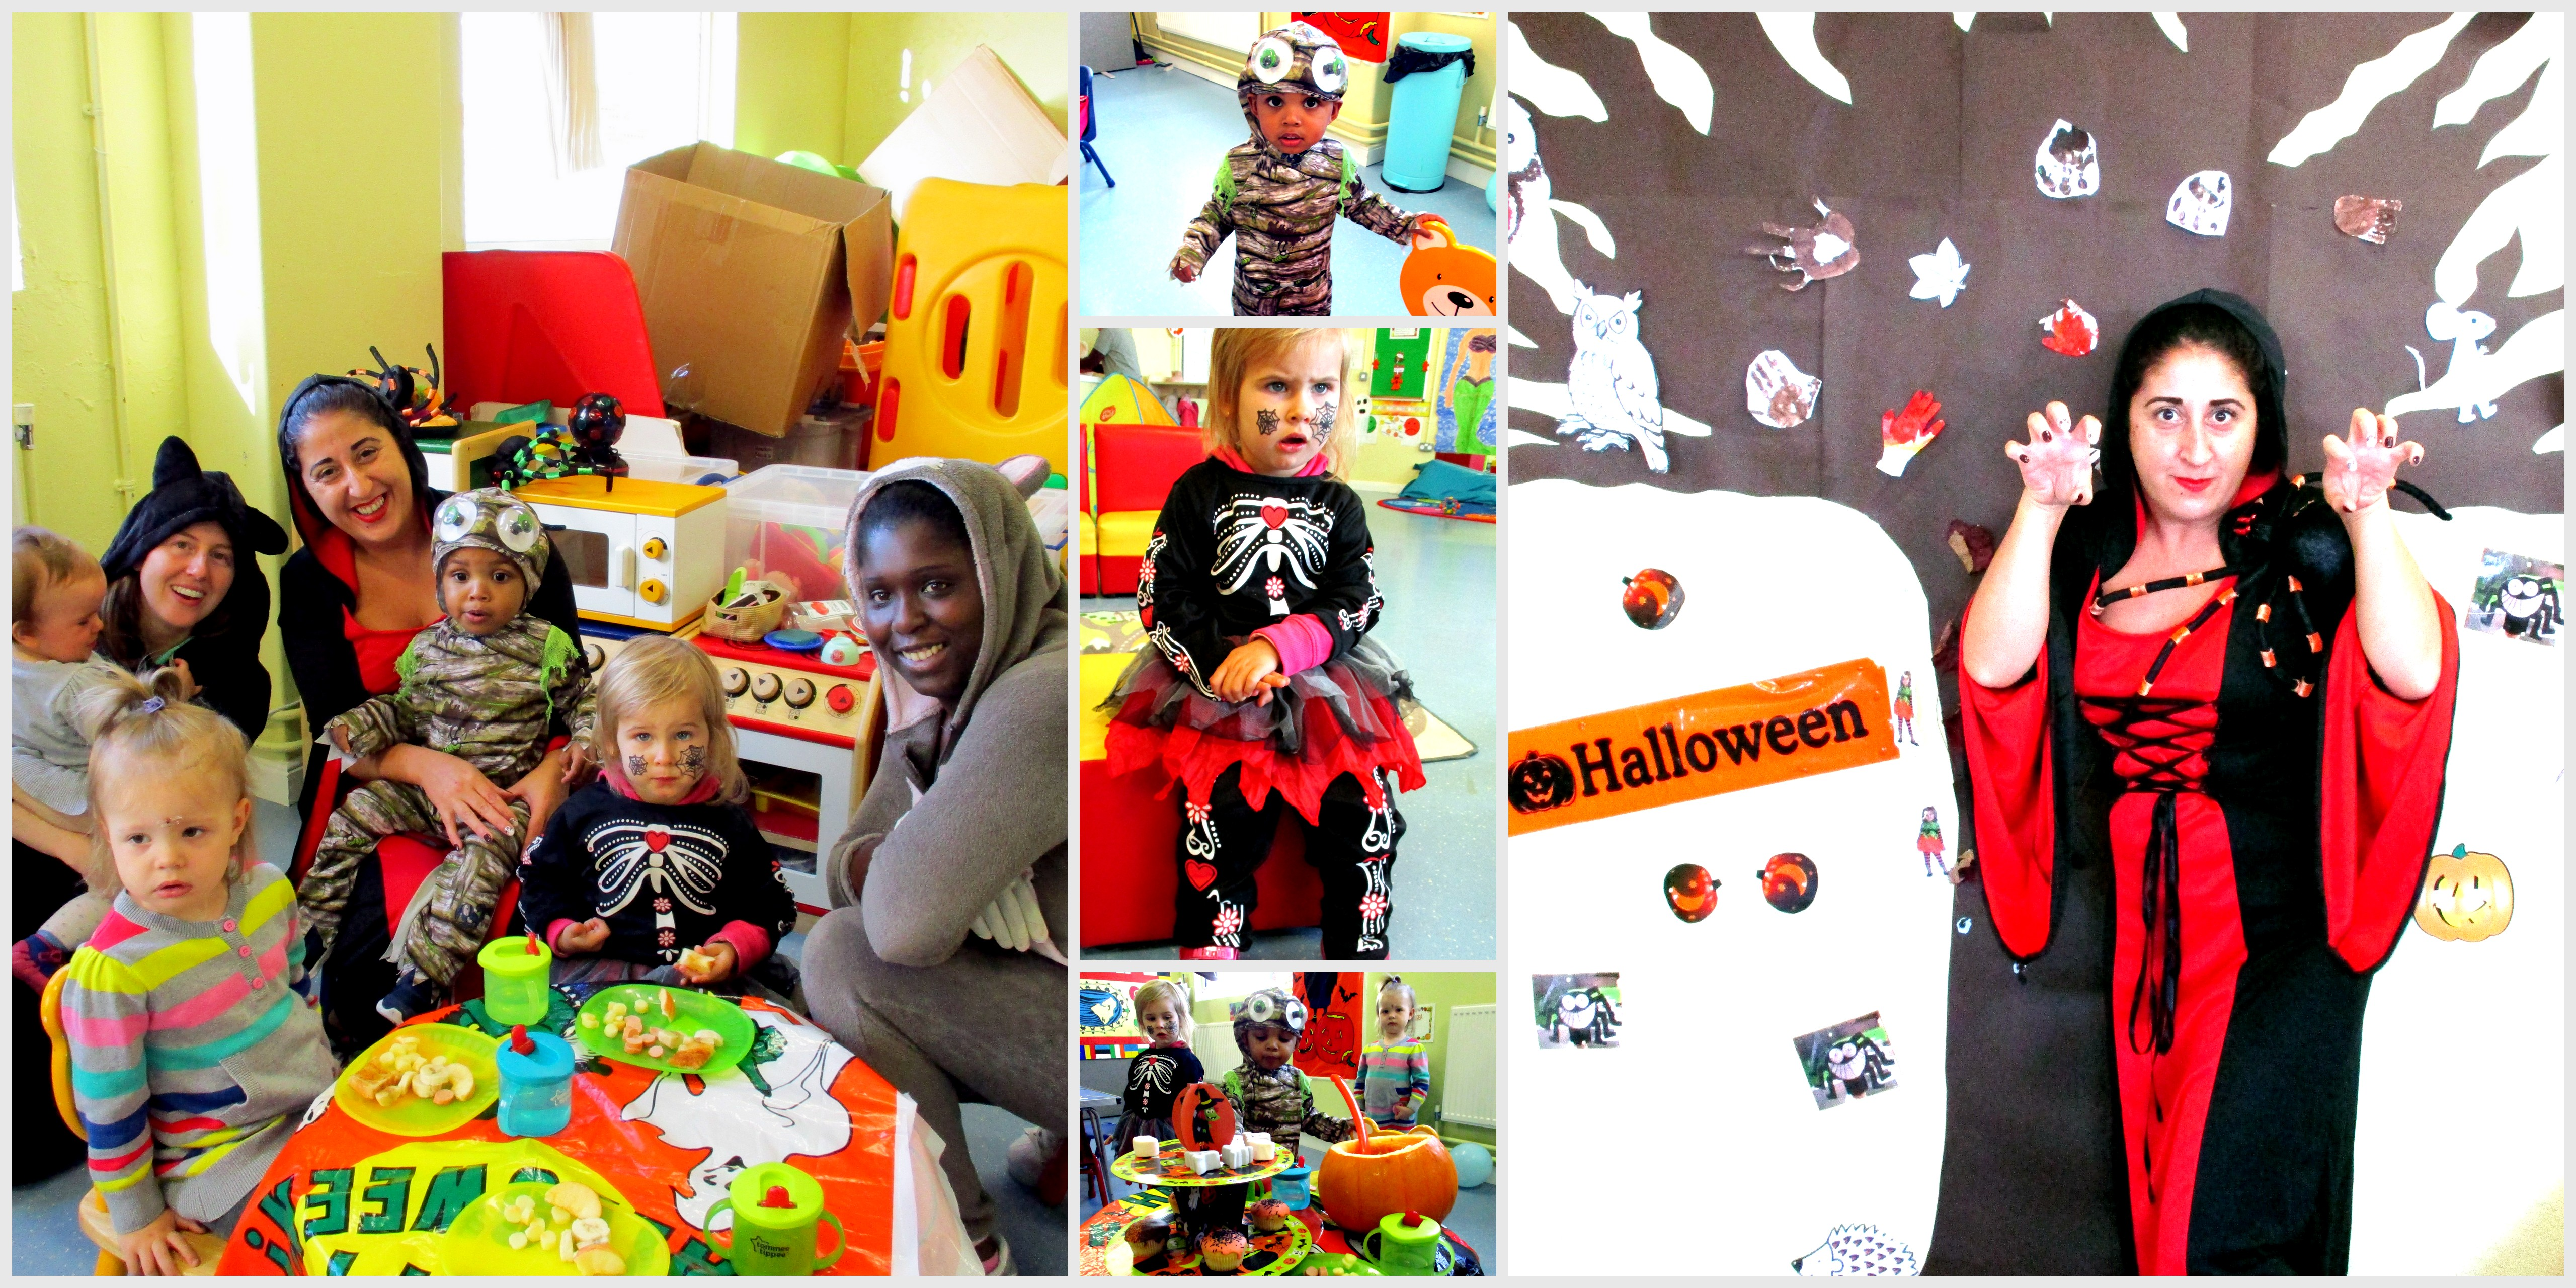 Hallowe'en Fun in the Creche